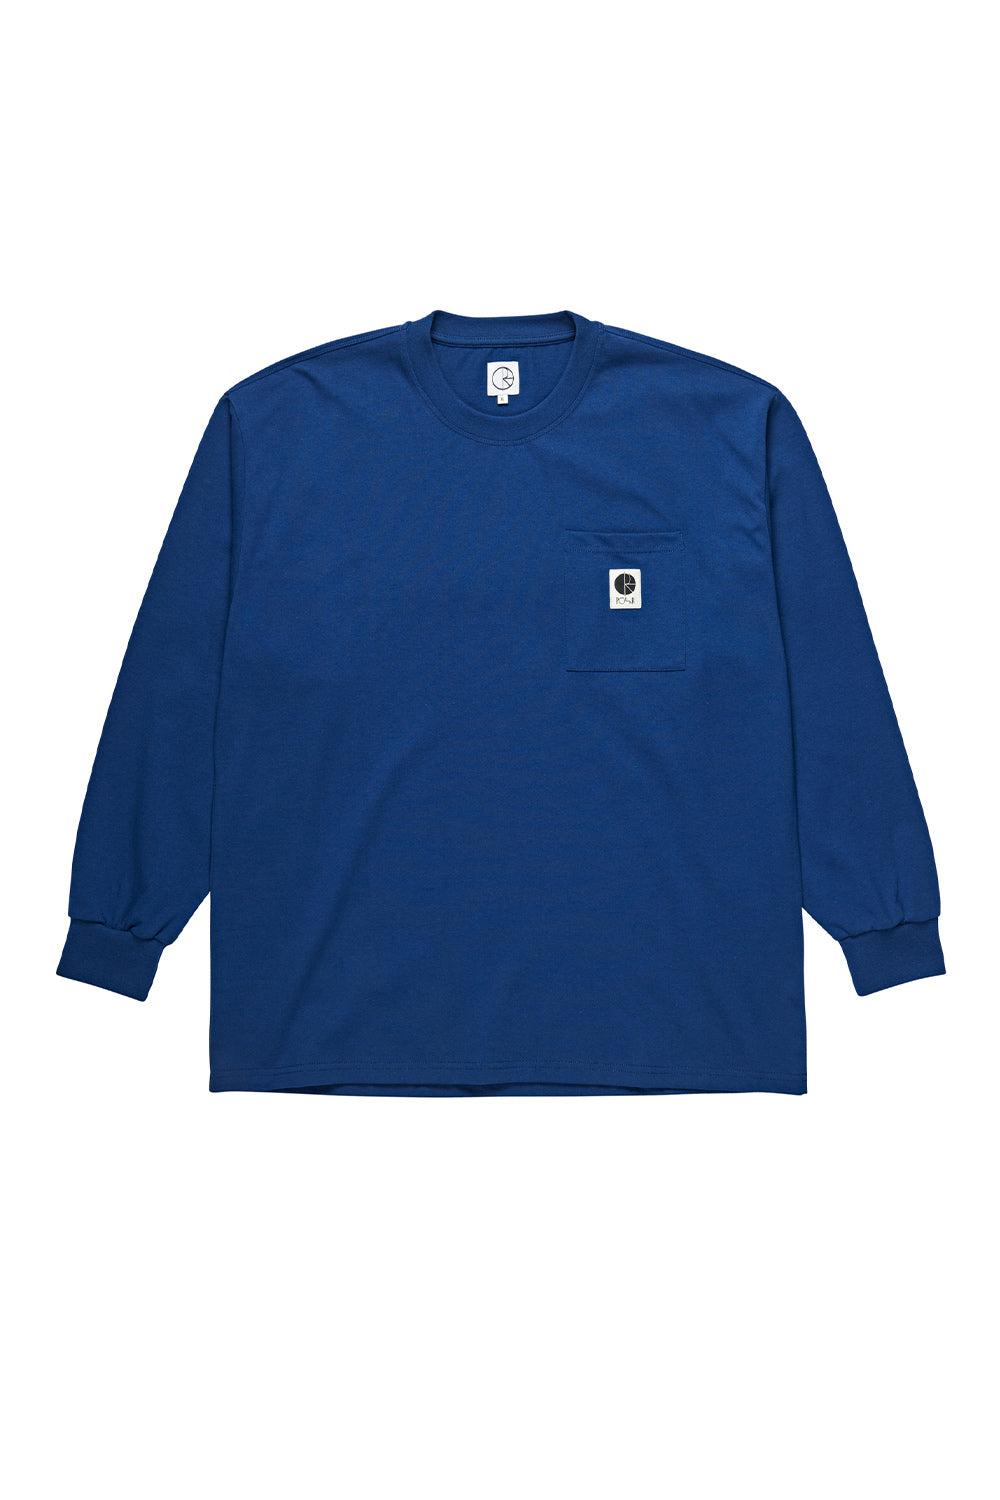 Polar Skate Co Pocket Longsleeve - Dark Blue | Buy Polar Skate Co Online